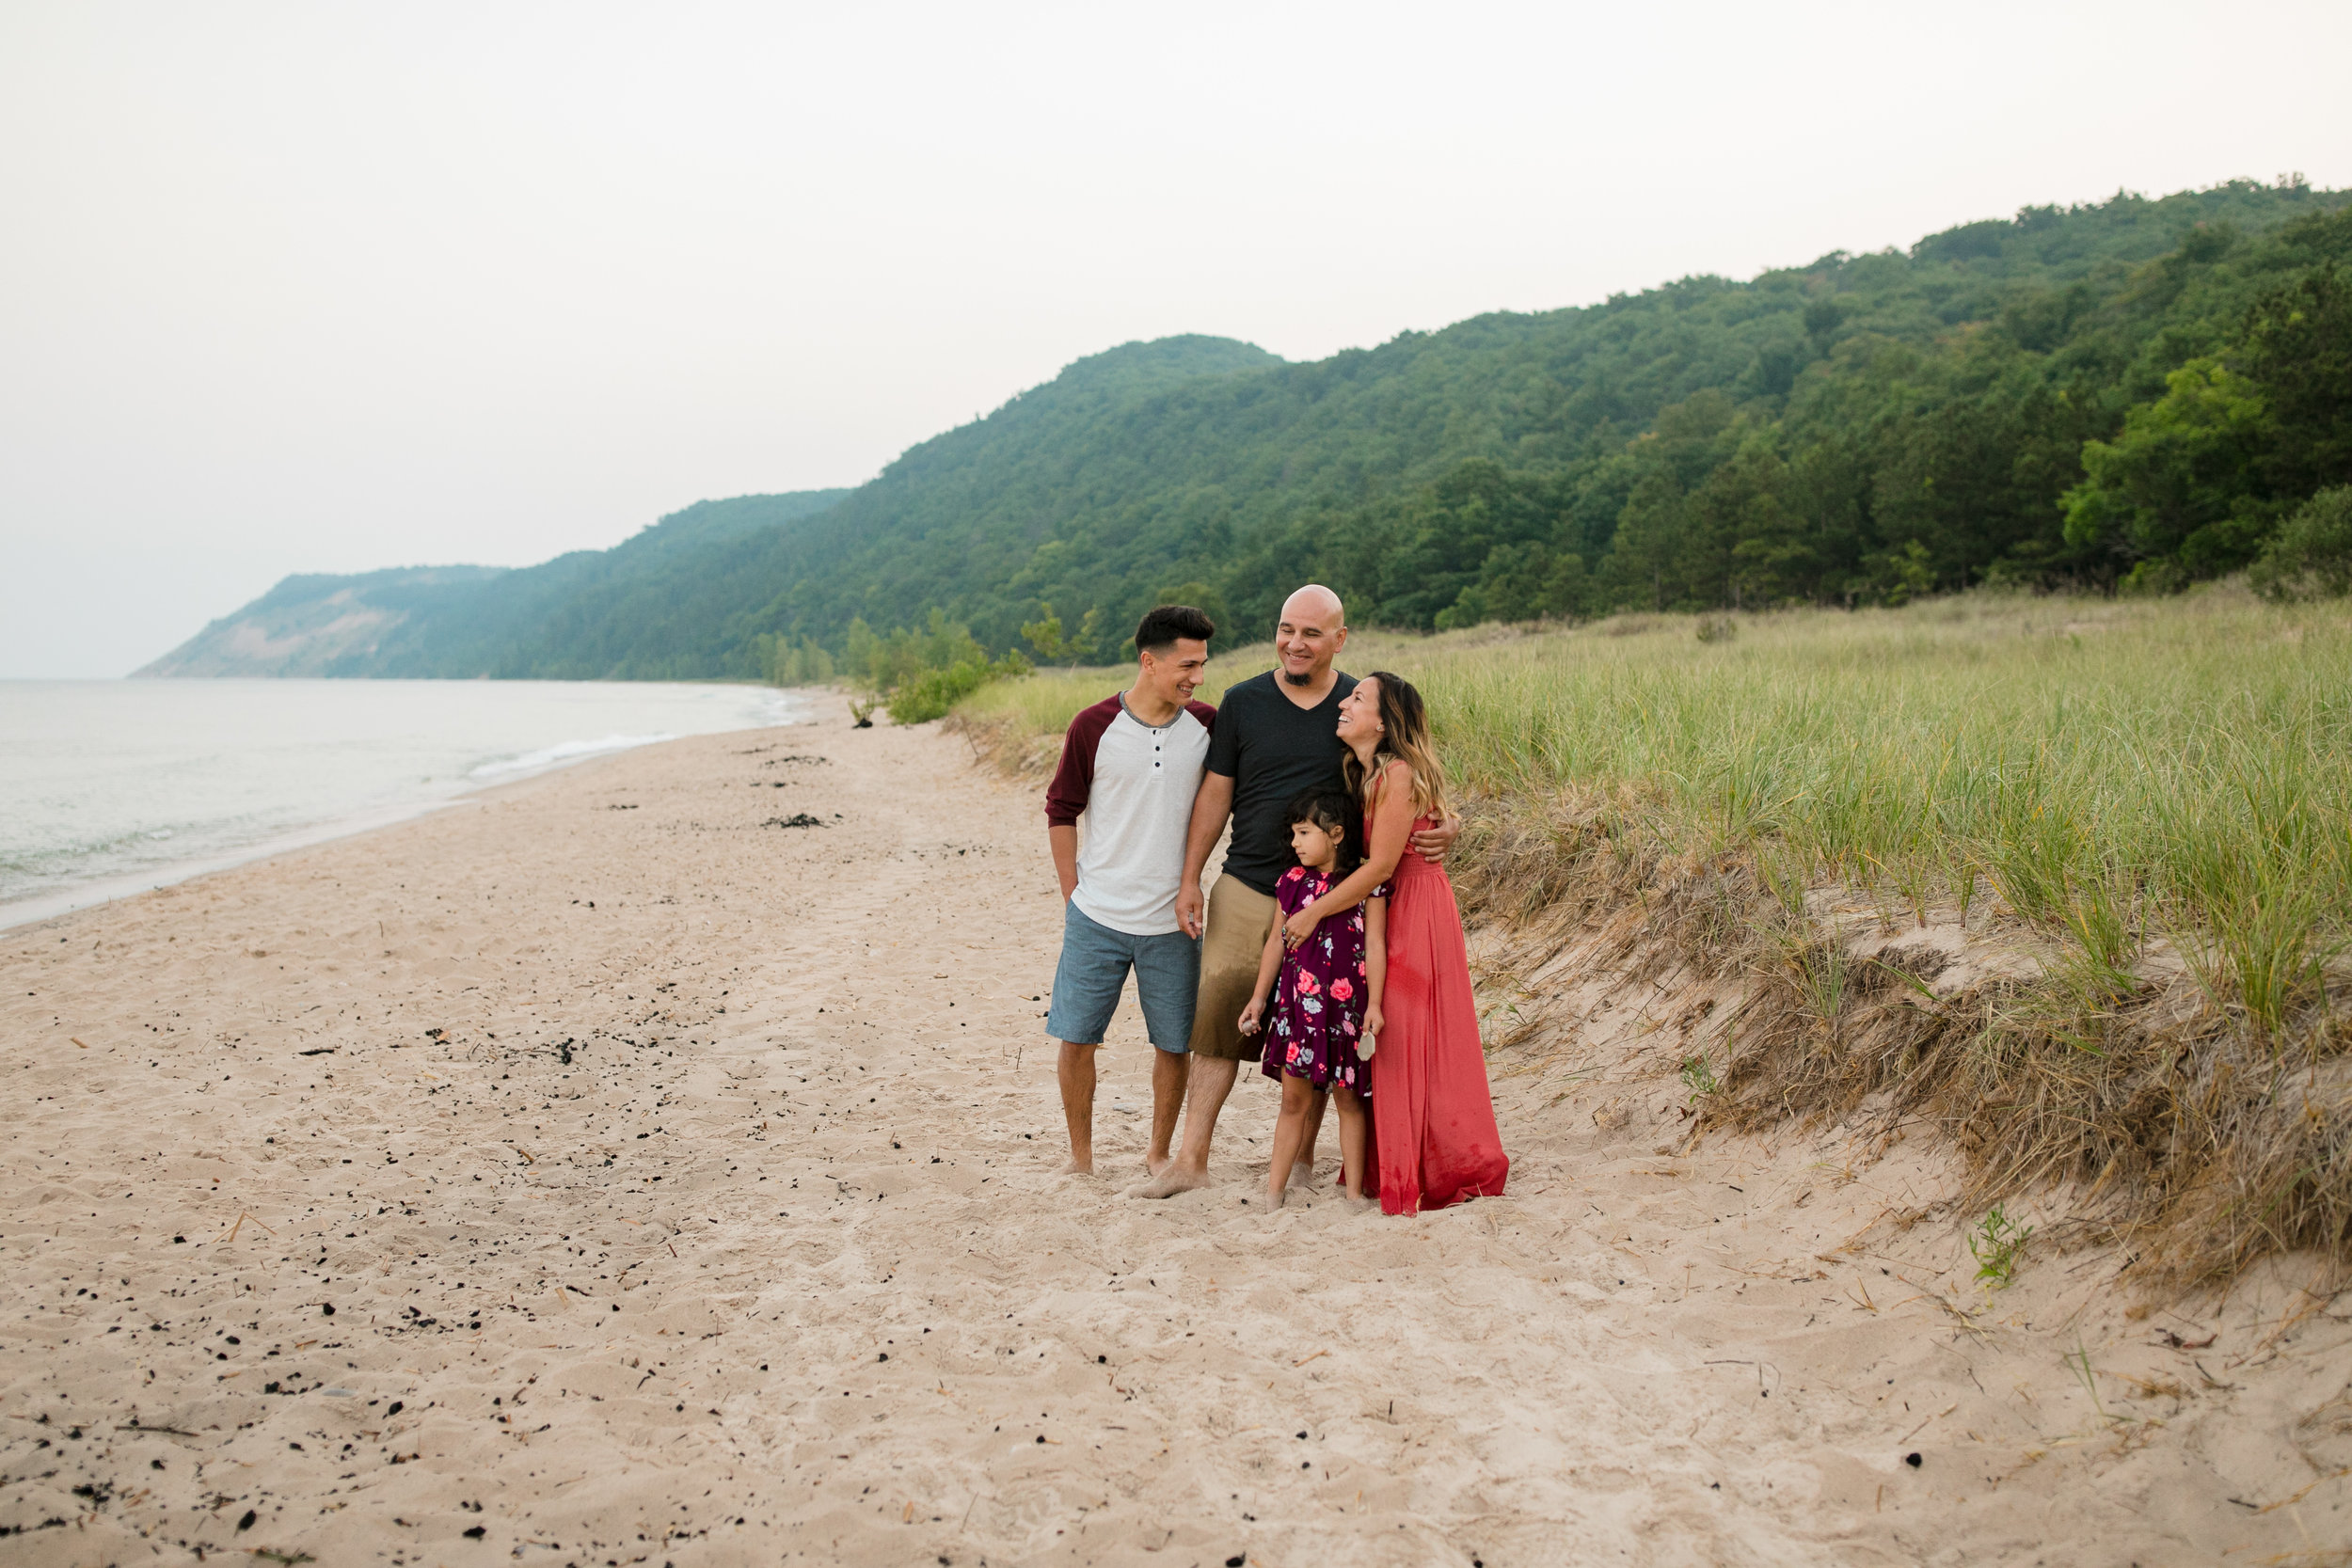 michigan-storytelling-photographer-esch-road-beach-empire-mi-santellano-family-43 - Copy.jpg